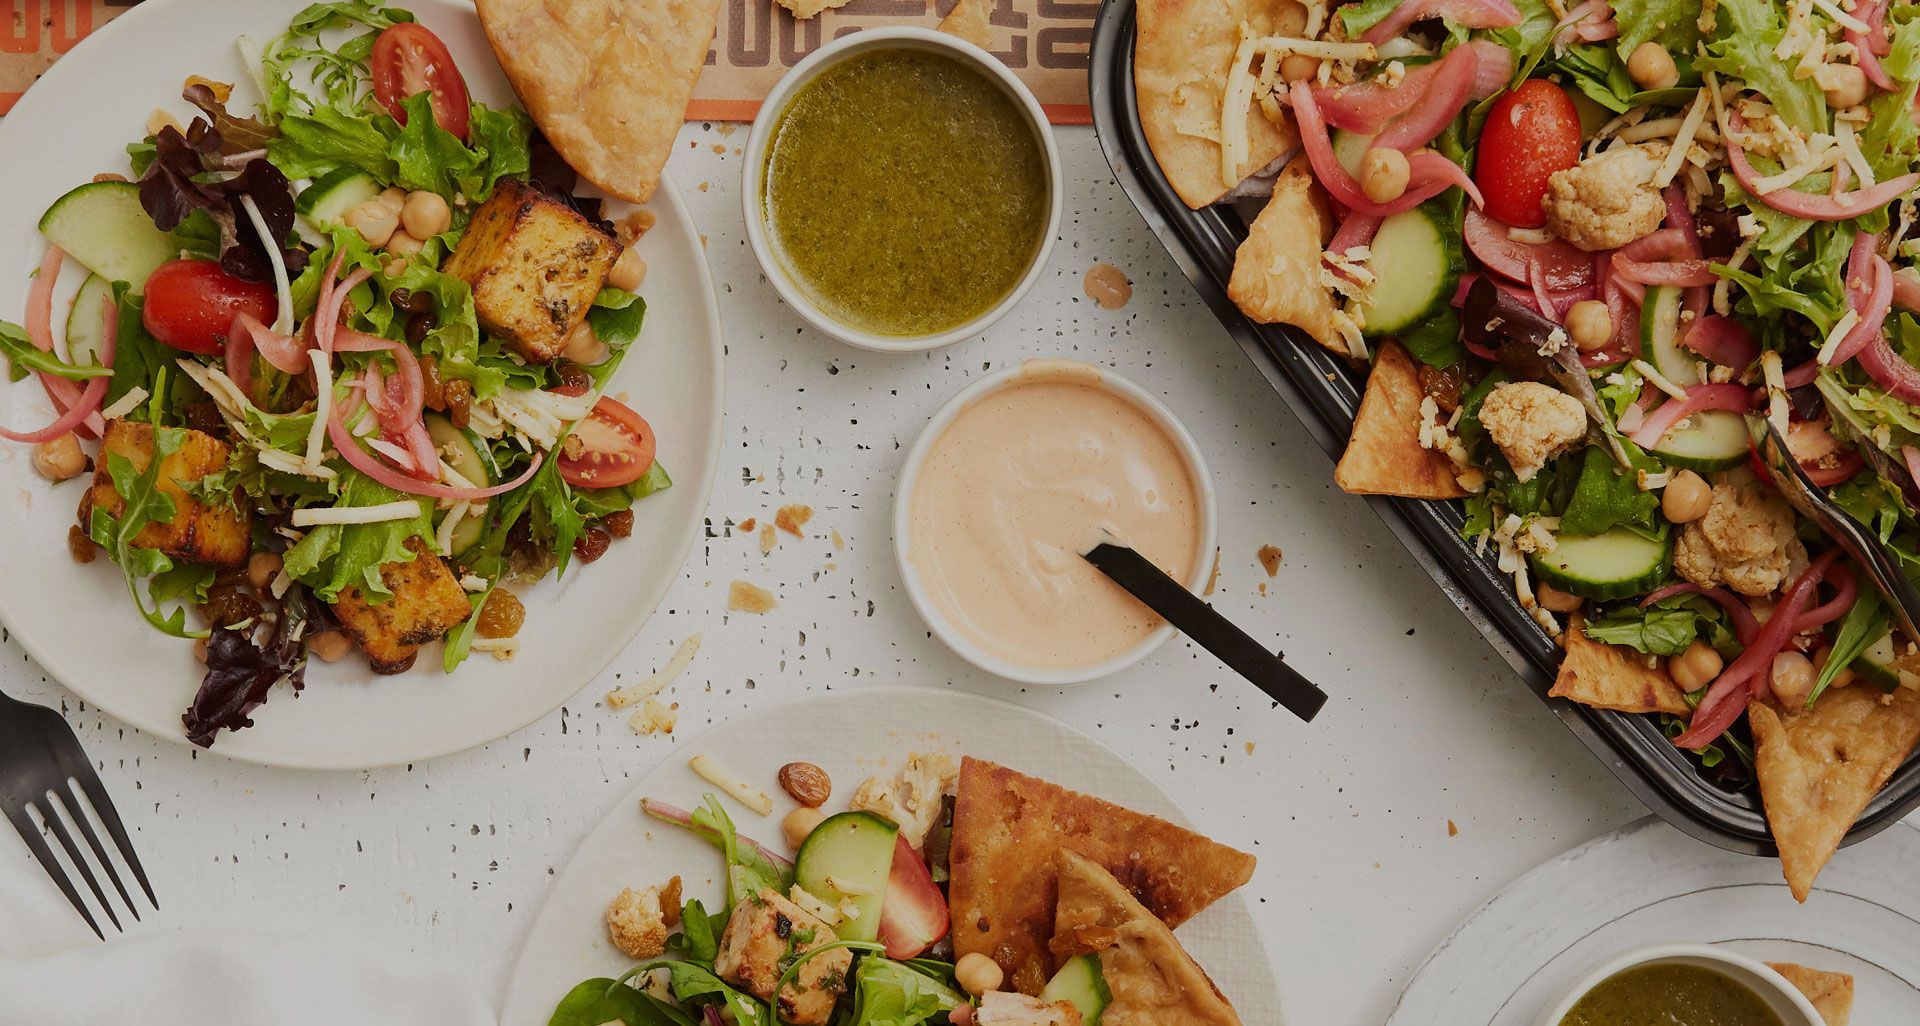 catering choolaah salad with choolaah ranch and tamarind ginger dressing